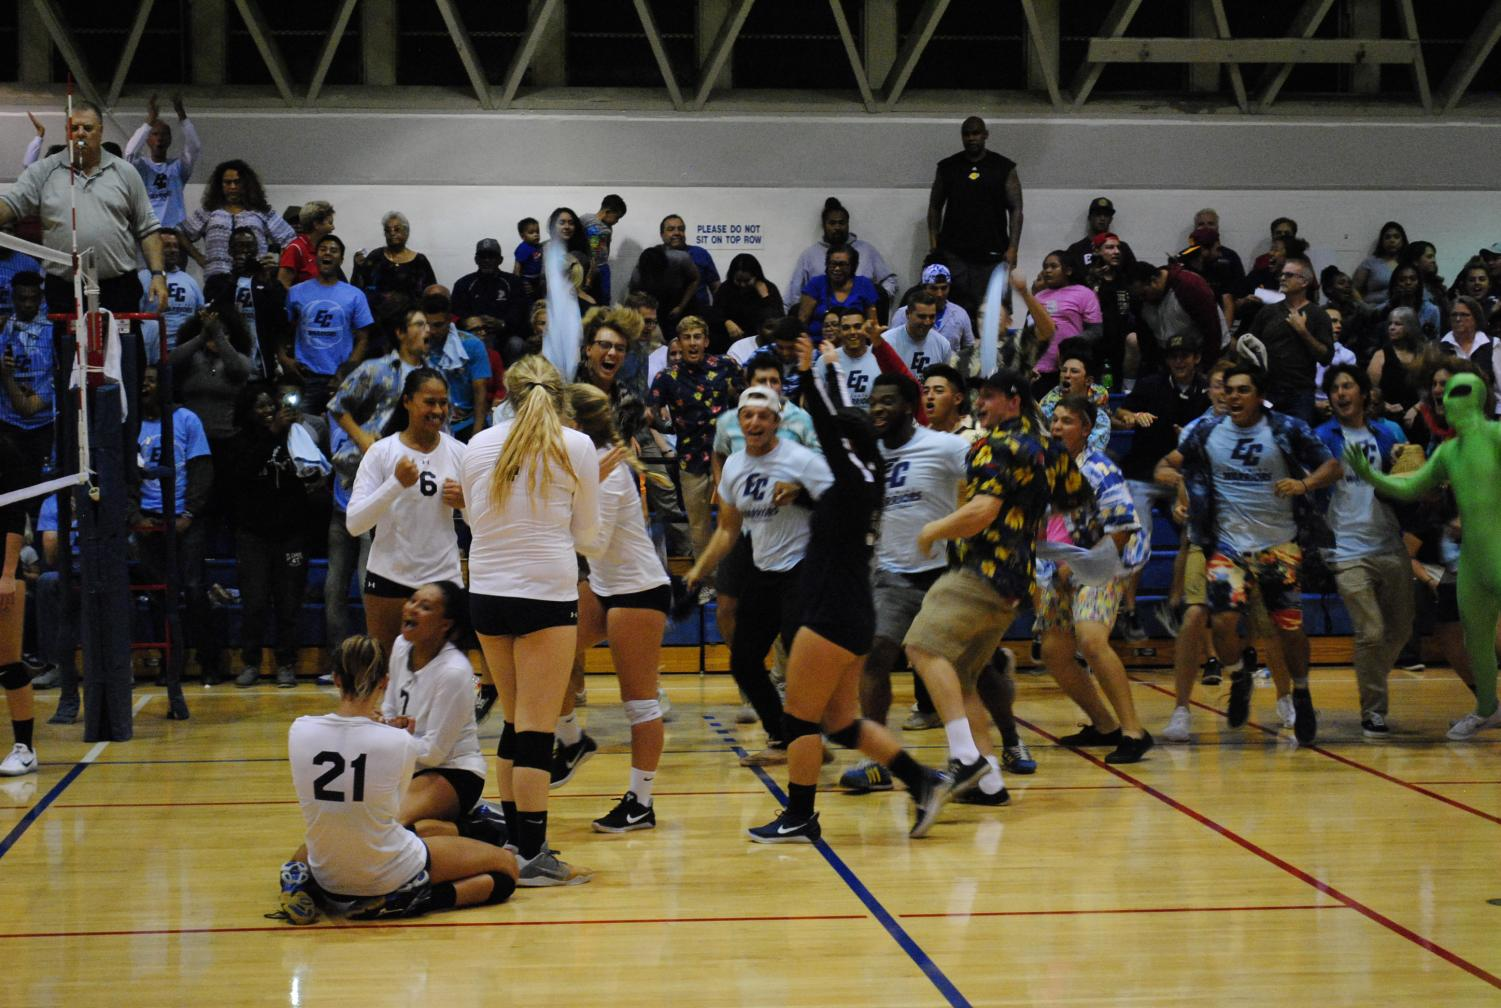 Women's volleyball team wins rivalry game against Long Beach